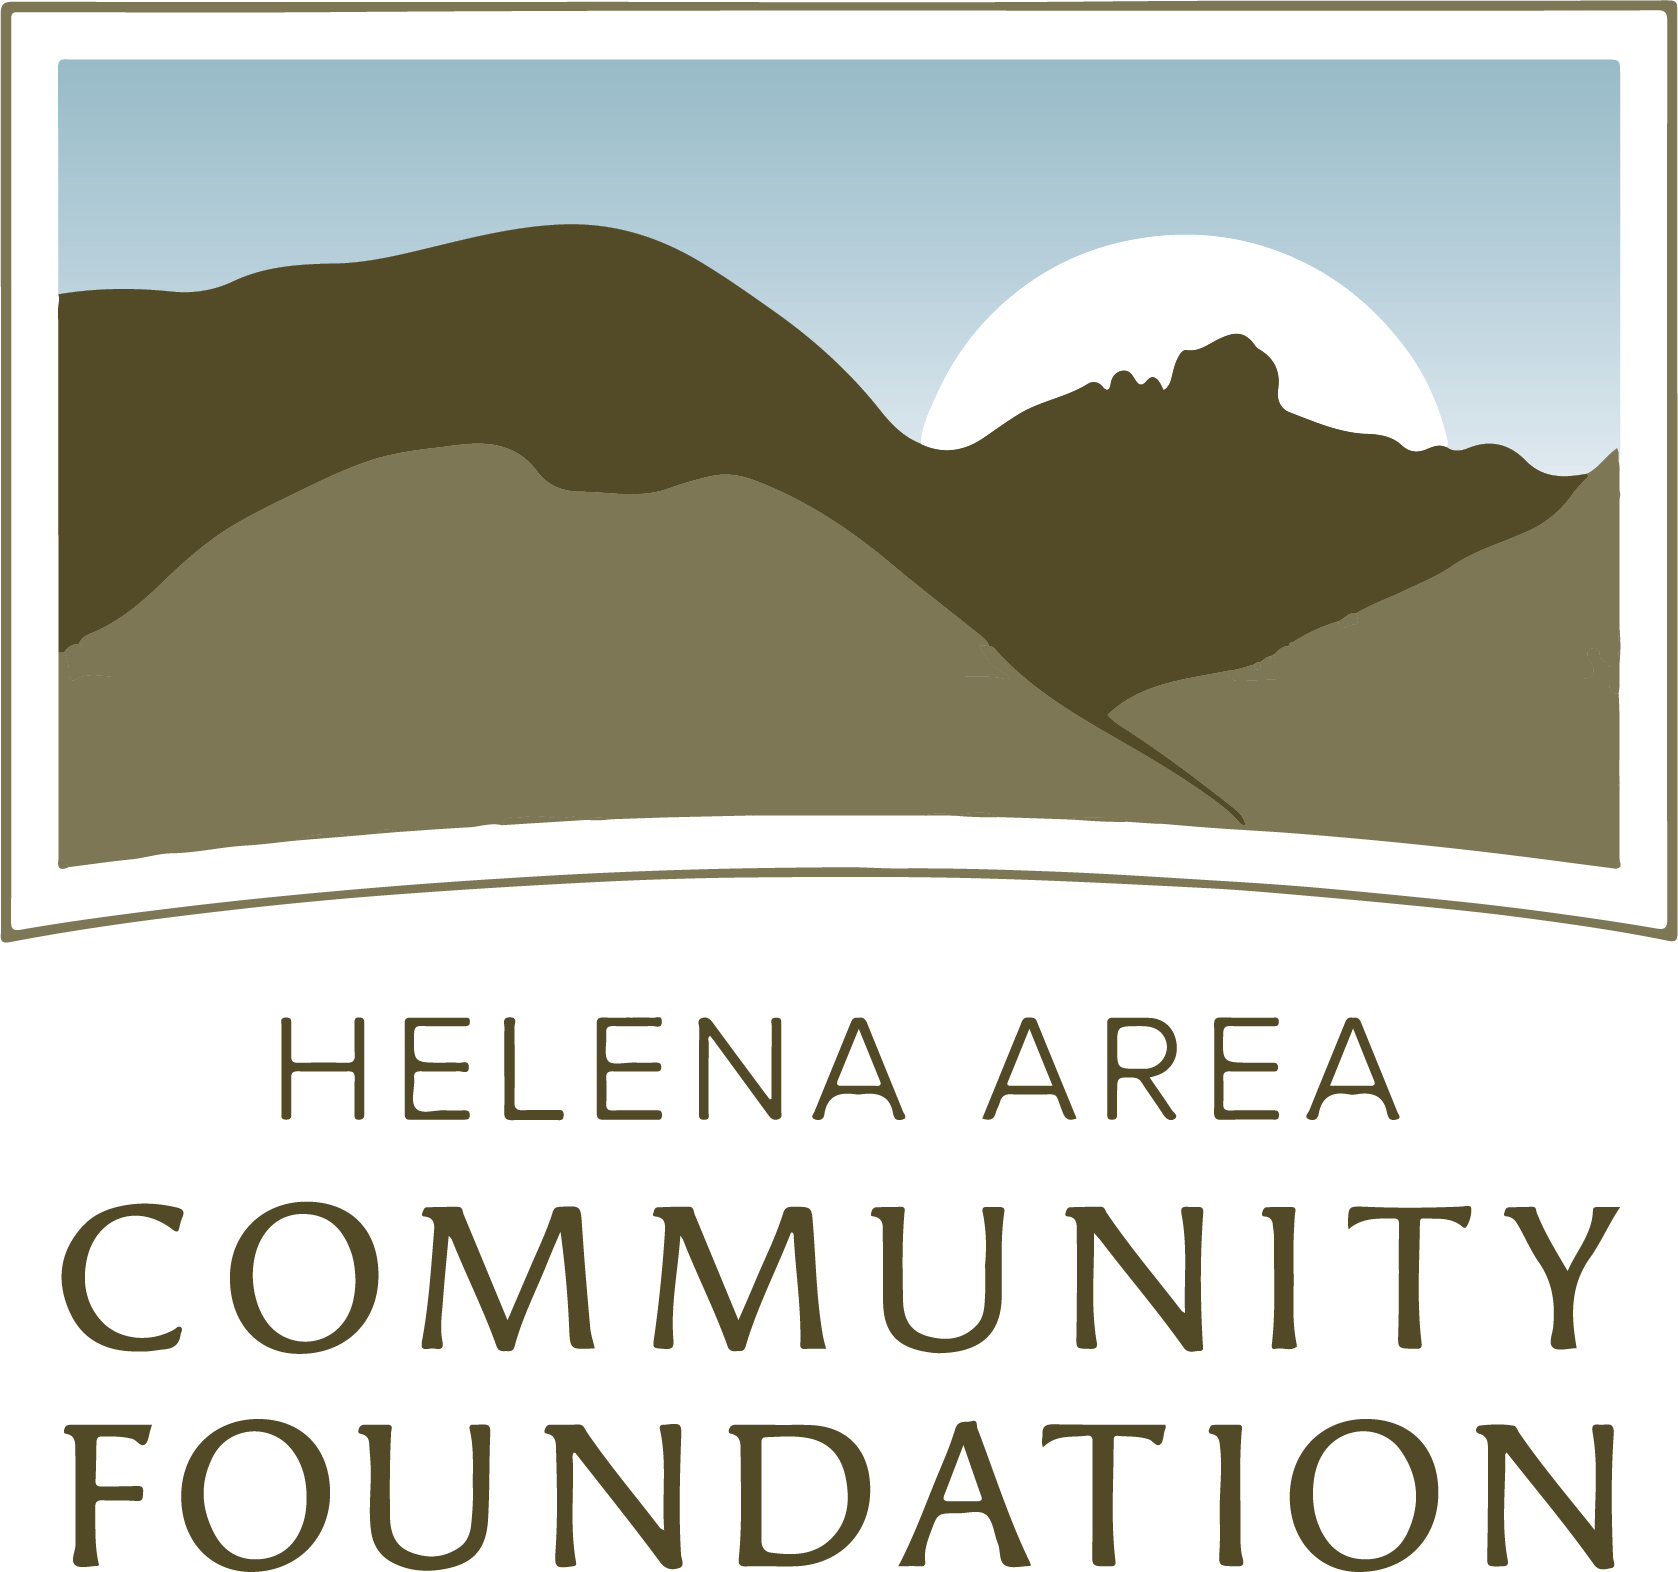 Contributing to HACF provides a permanent funding source for those in need image